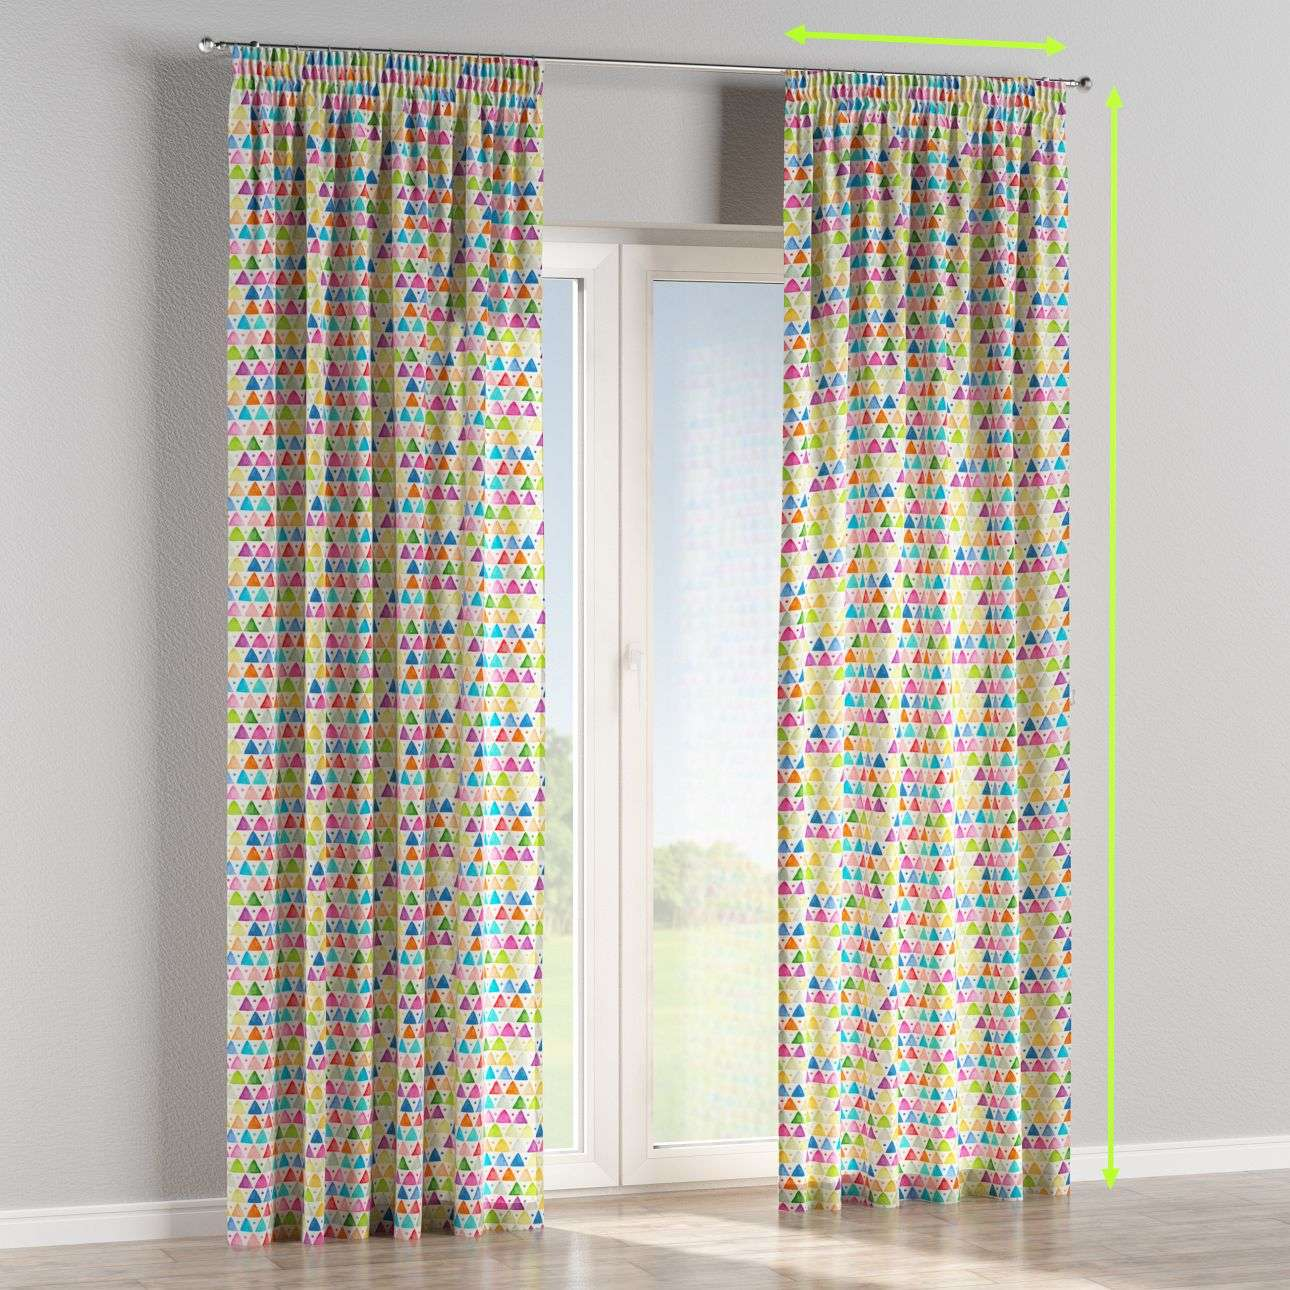 Pencil pleat curtains in collection New Art, fabric: 140-27